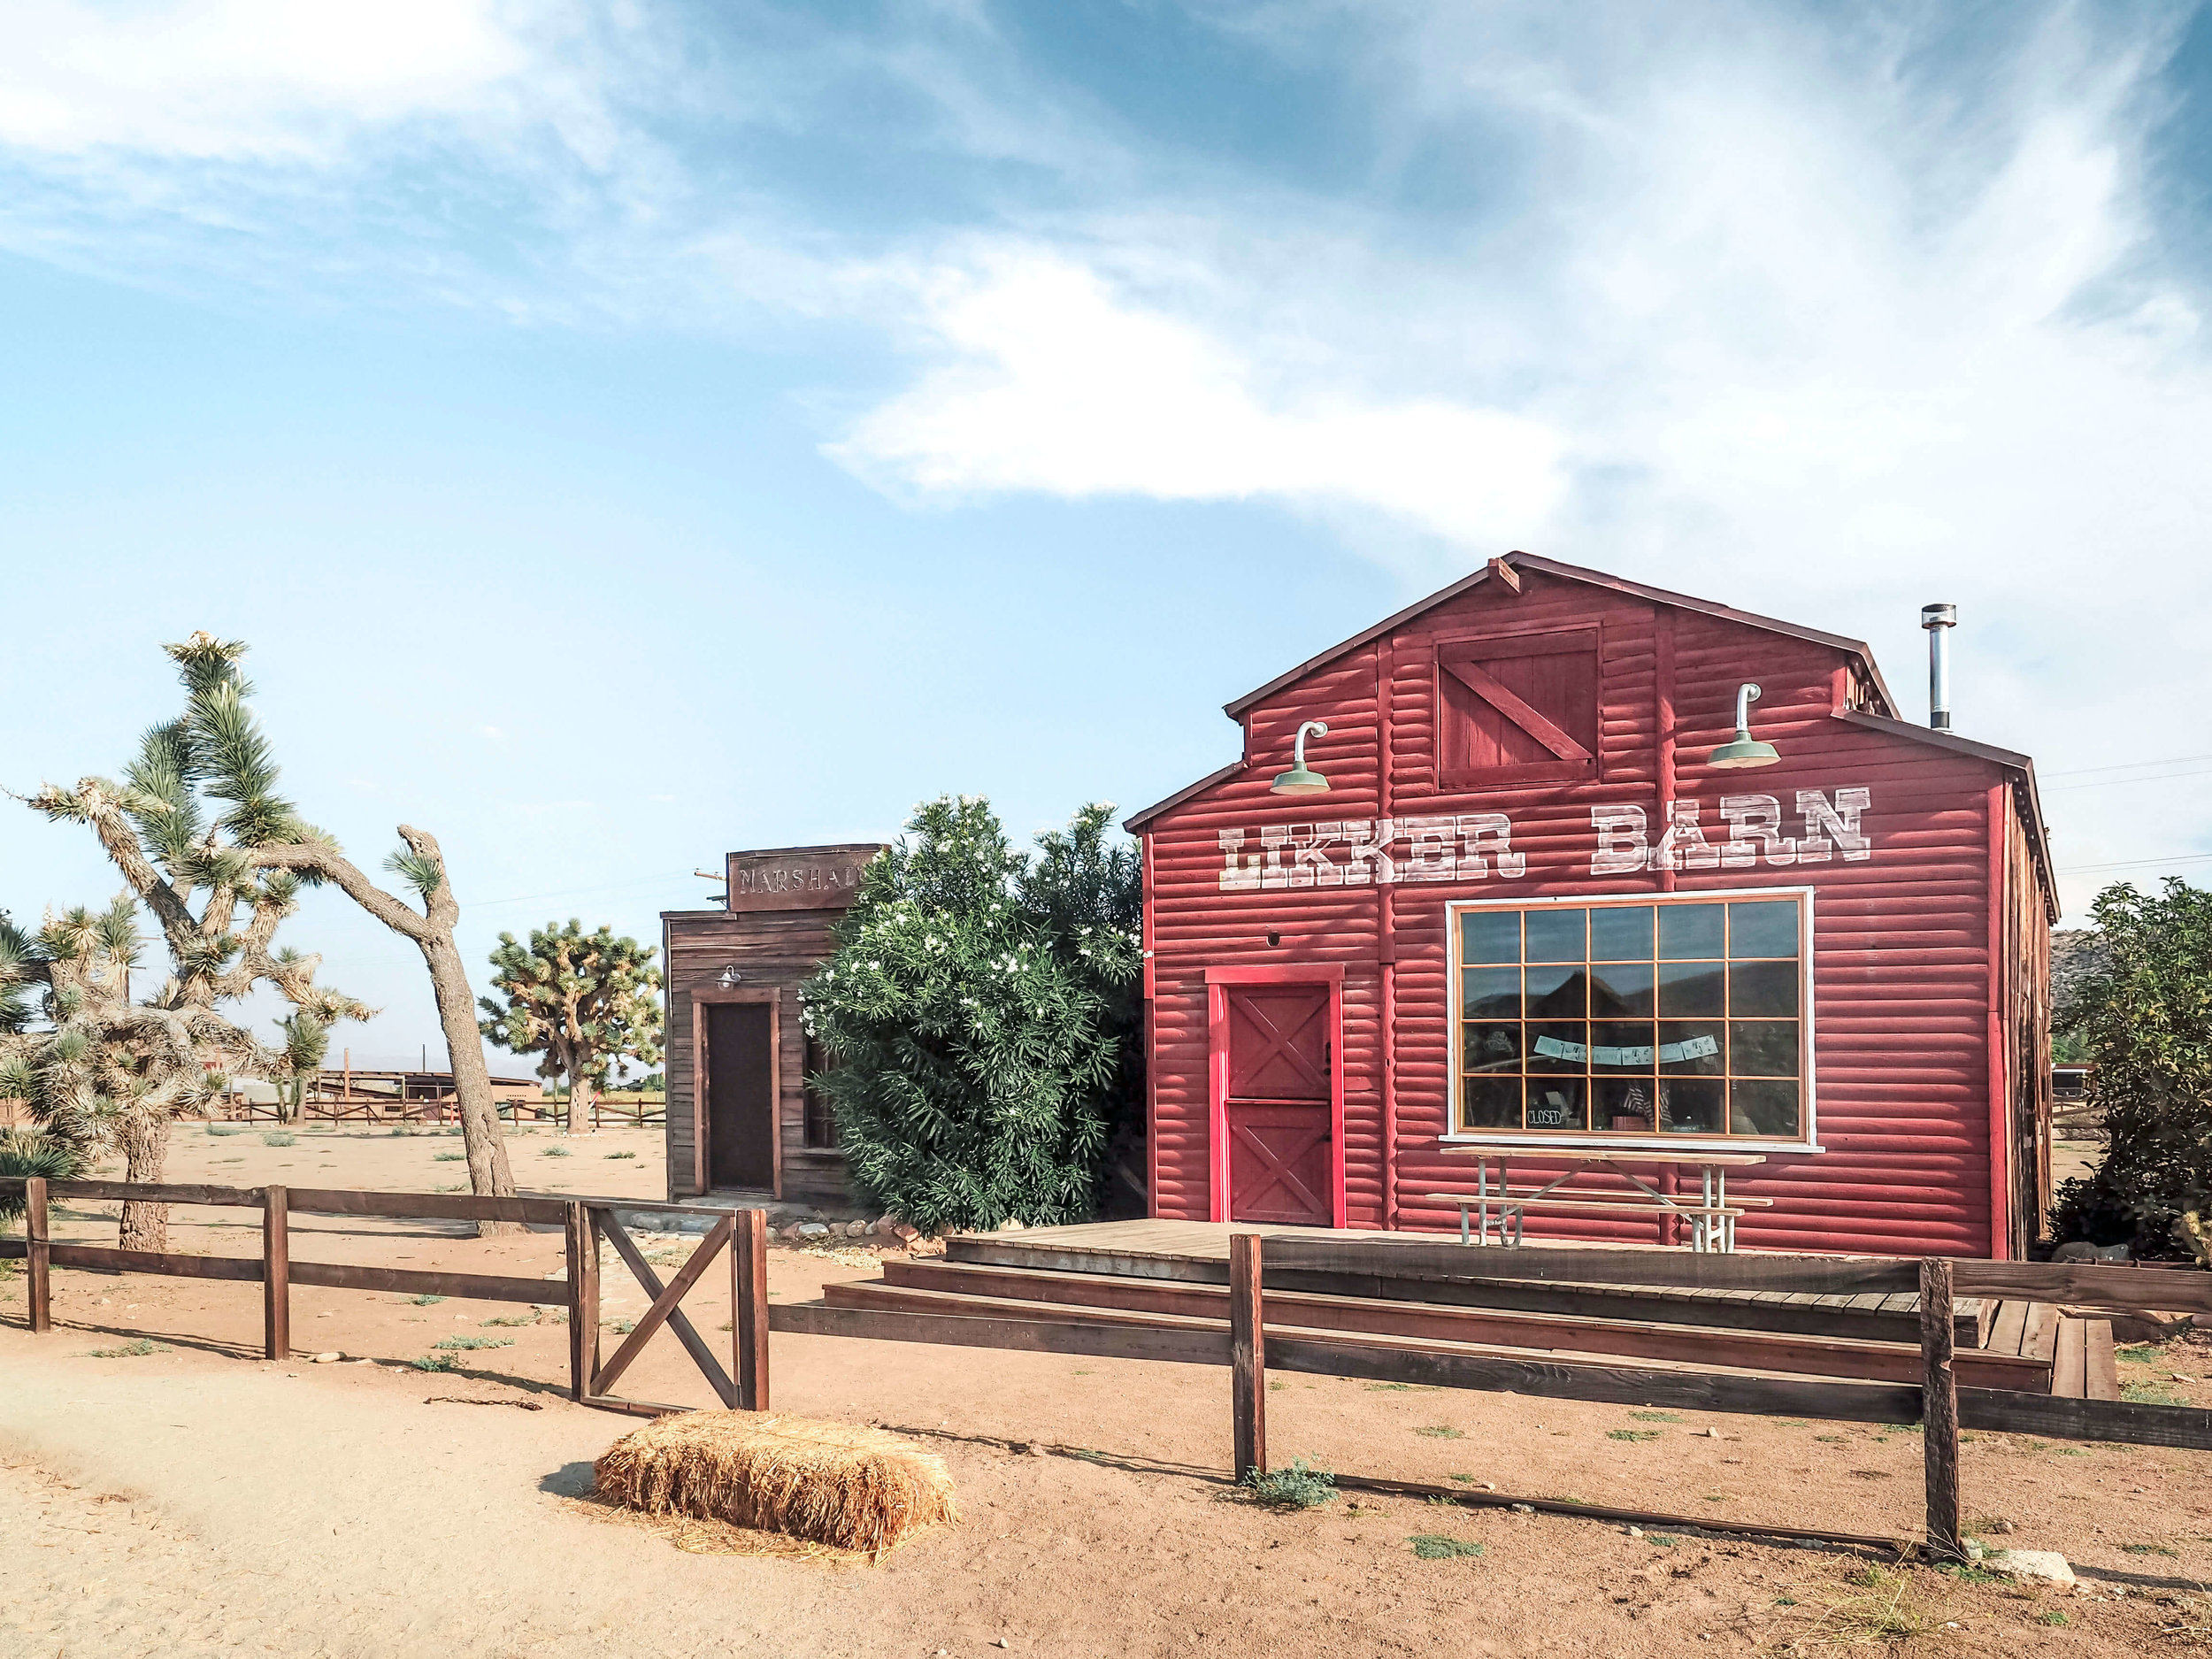 Even in the modern day you can experience the old Wild West of the 1800's. Pioneertown, California is a step back in time with a saloon, stables, and a thriving artist community. #california #wildwest #desert #travel